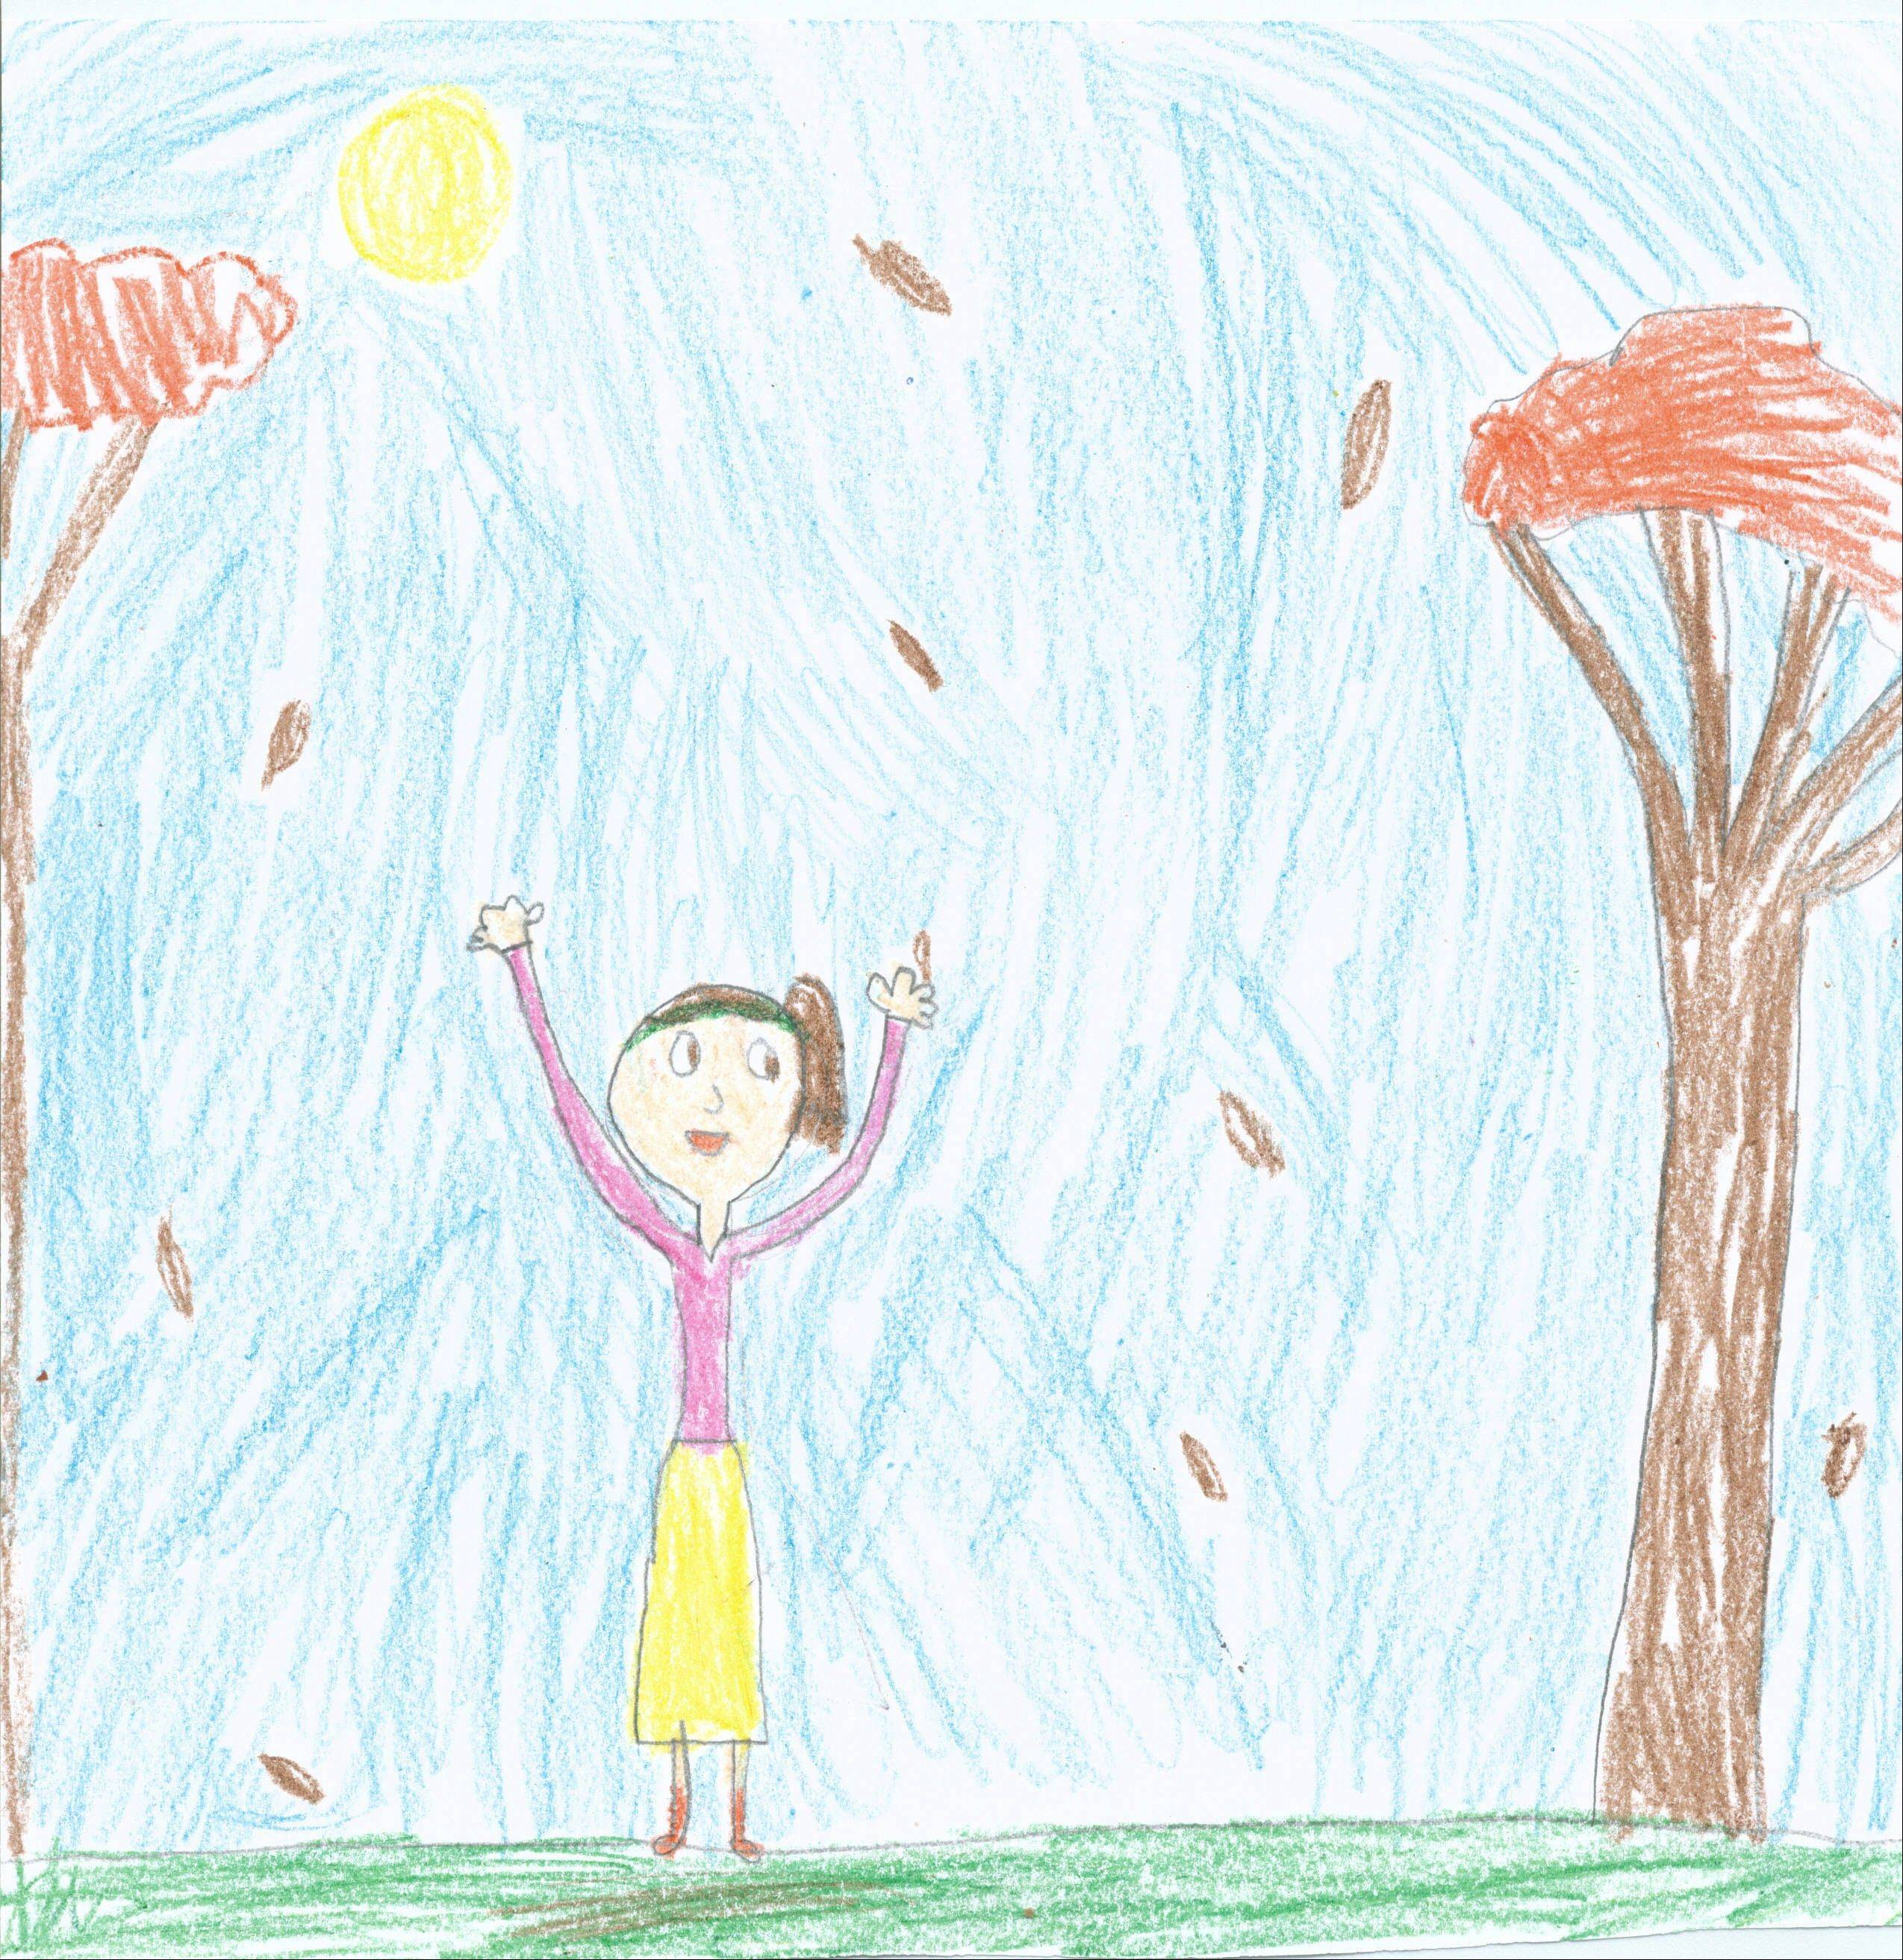 "Rachel Cornille, 7, attends Bell Graham Elementary School in St. Charles. ""The leaves were fallingLike ocean waves. But as cold as ice cubes. There was a leaf as short as my eraser,Leaves as sharp as a porcupineThe wind blowing theleaves like crazy.It looks as cool as a race carAnd as pretty as a flowerAl light as the sun.As quiet as a mouseI think fall is cool."""